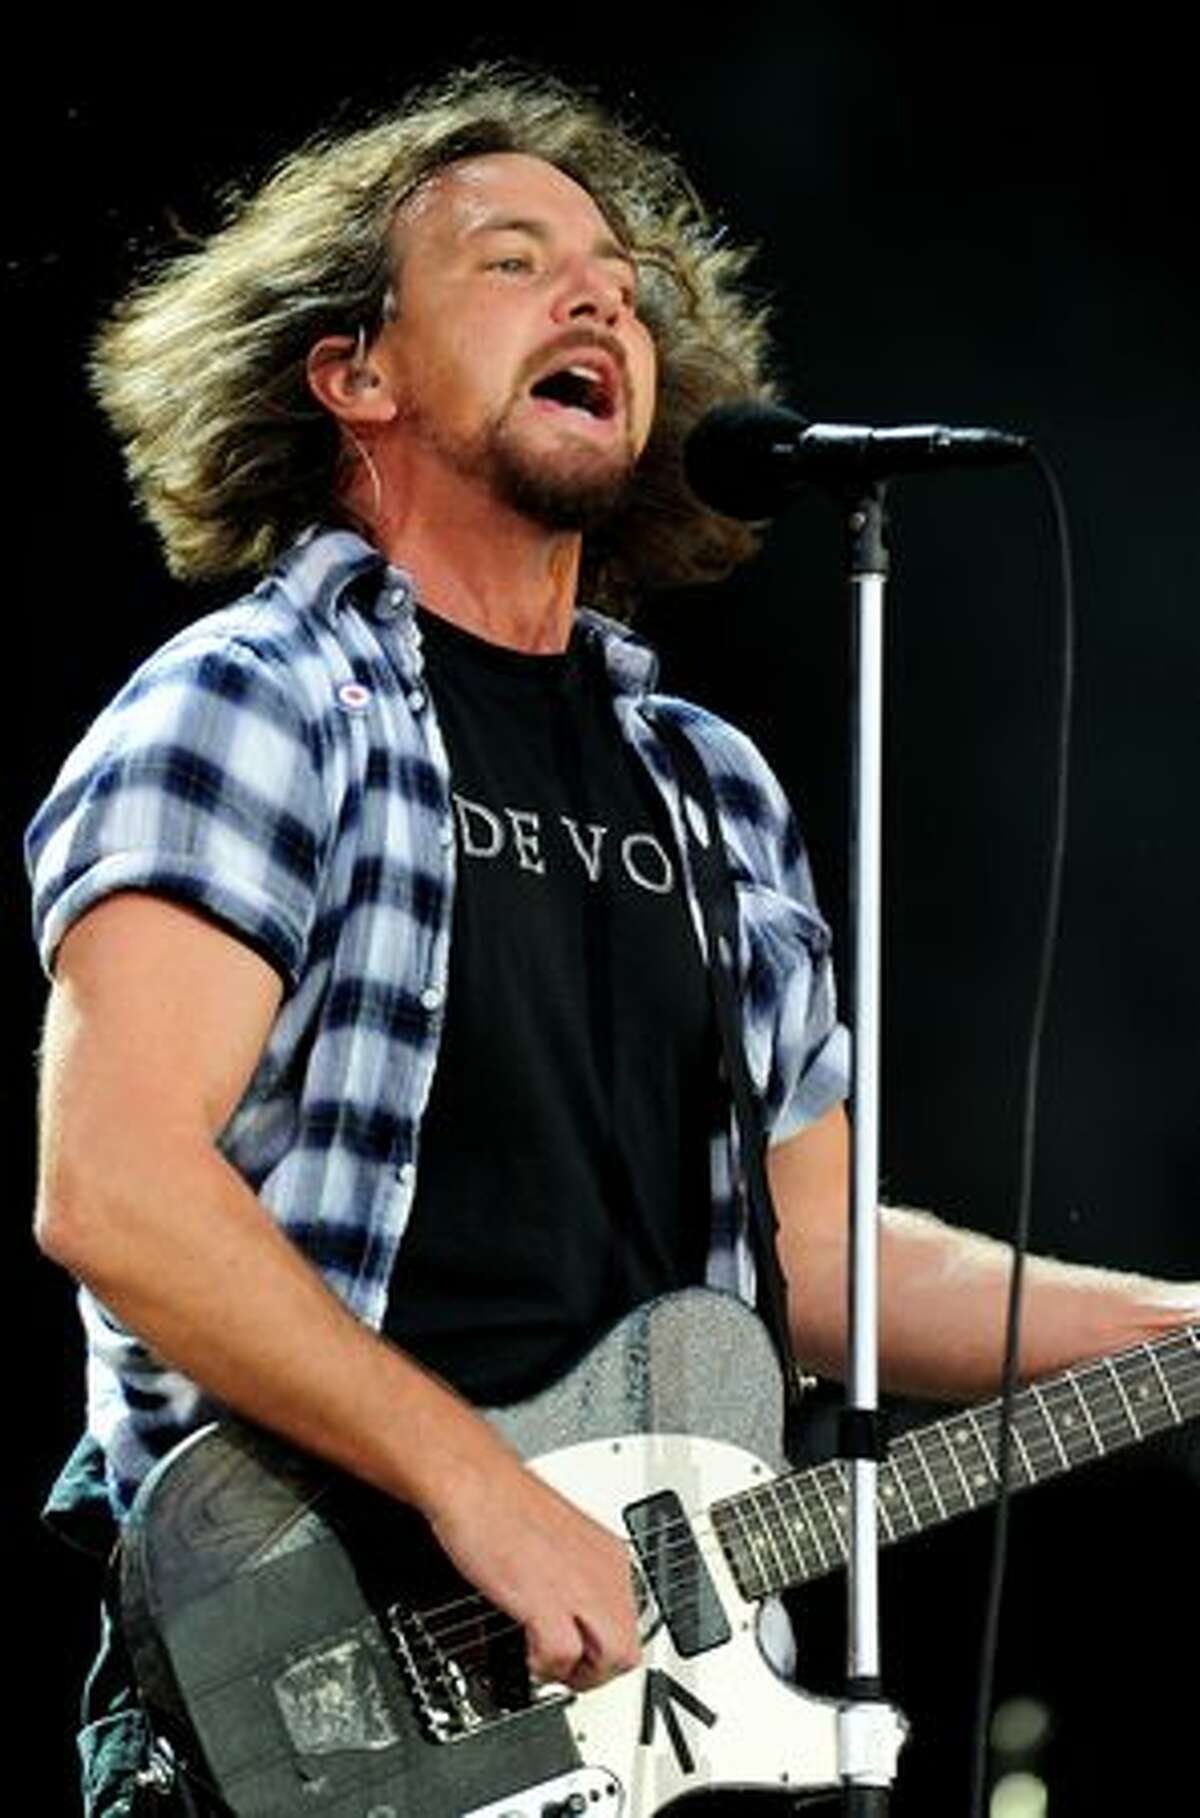 Eddie Vedder of Pearl Jam performs during Day 1 of the Hard Rock Calling festival held in Hyde Park on June 25, 2010 in London, England.